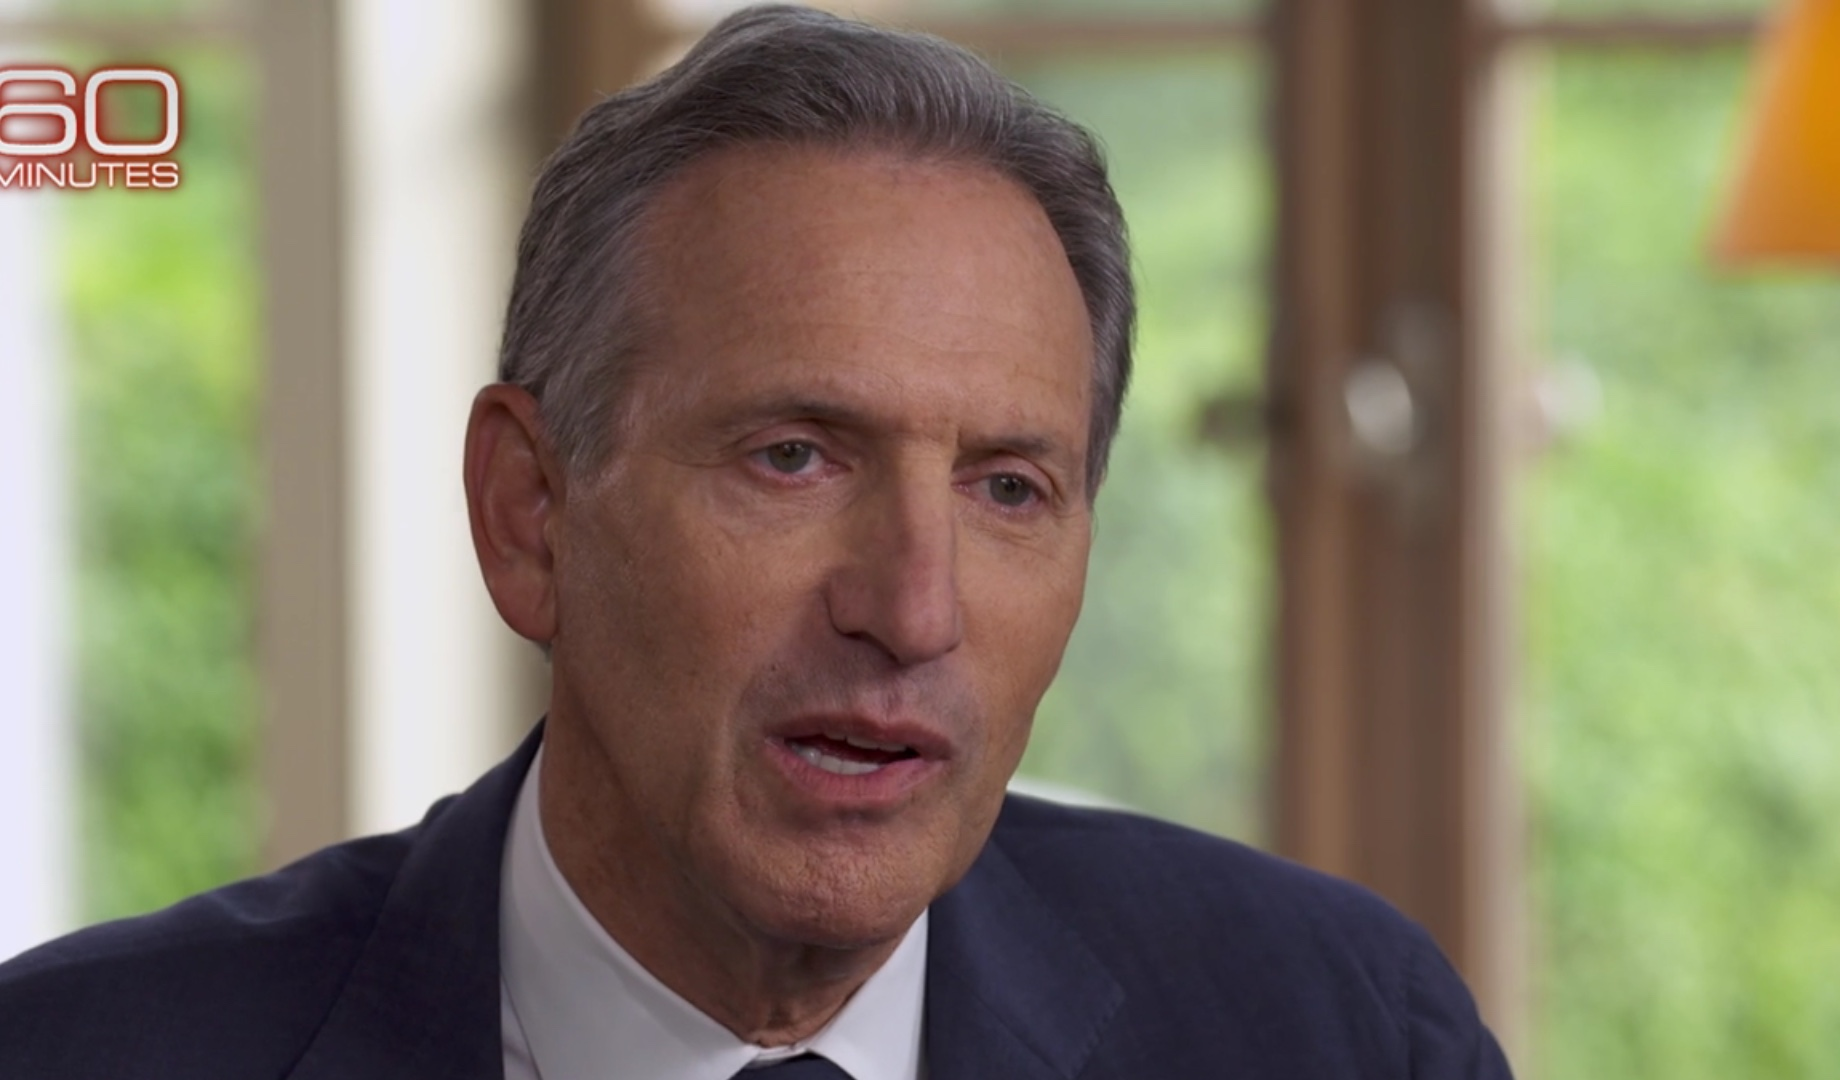 Former Starbucks CEO Howard Schultz is a guest on '60 Minutes' to discuss his potential presidential candidacy in 2020, Jan. 27 2019. CBS News screenshot.